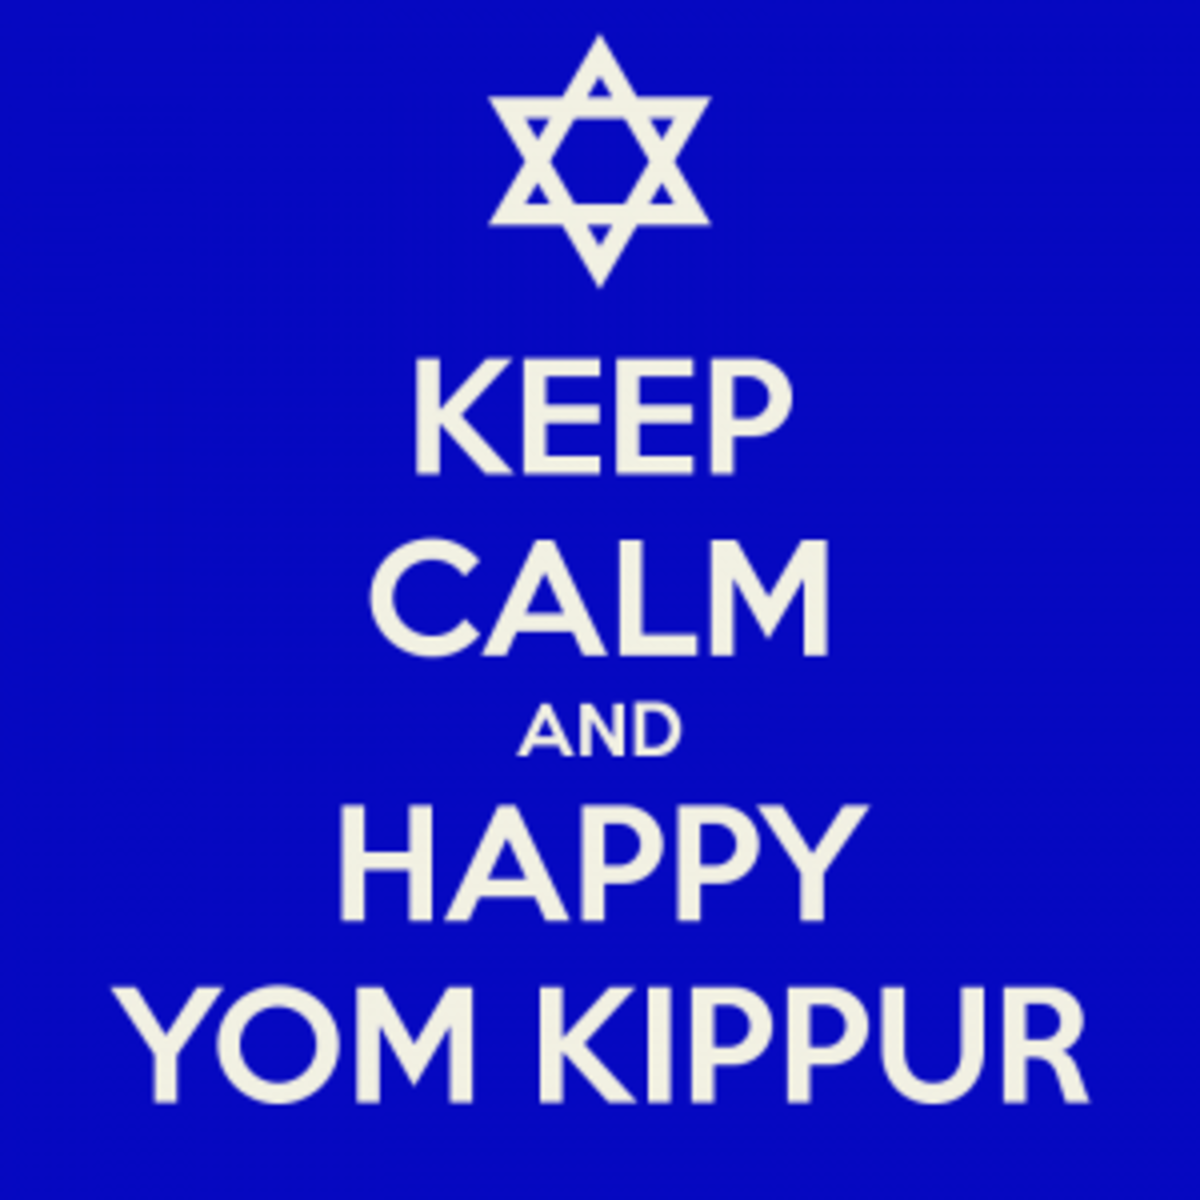 Yom Kippur is the most holy day in the Jewish calendar, in which Jews fast and pray to atone for their sins and prepare for a fresh start in the New Year.